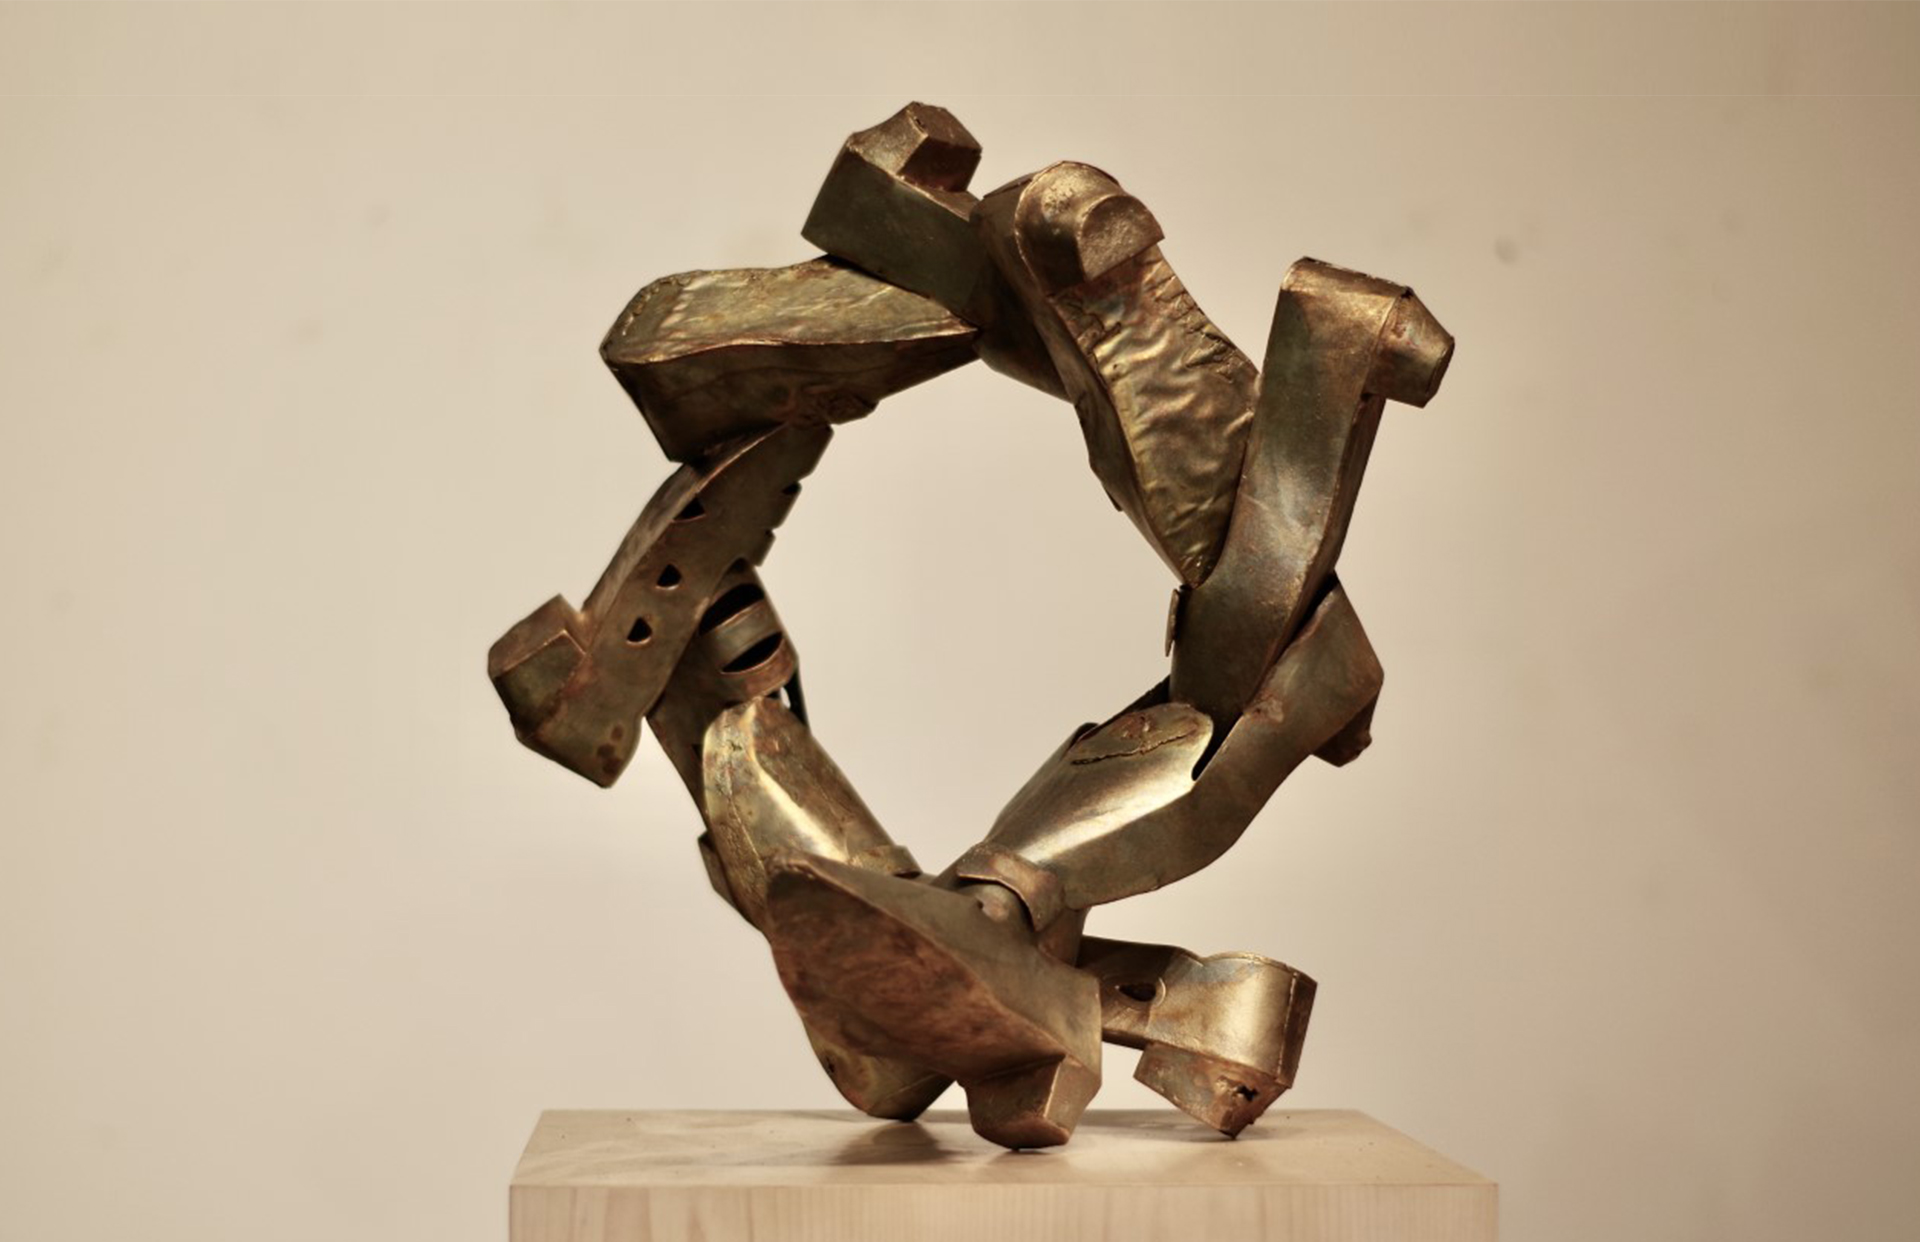 'Joss,' 2020, Bronze with patina, Courtesy of the artist